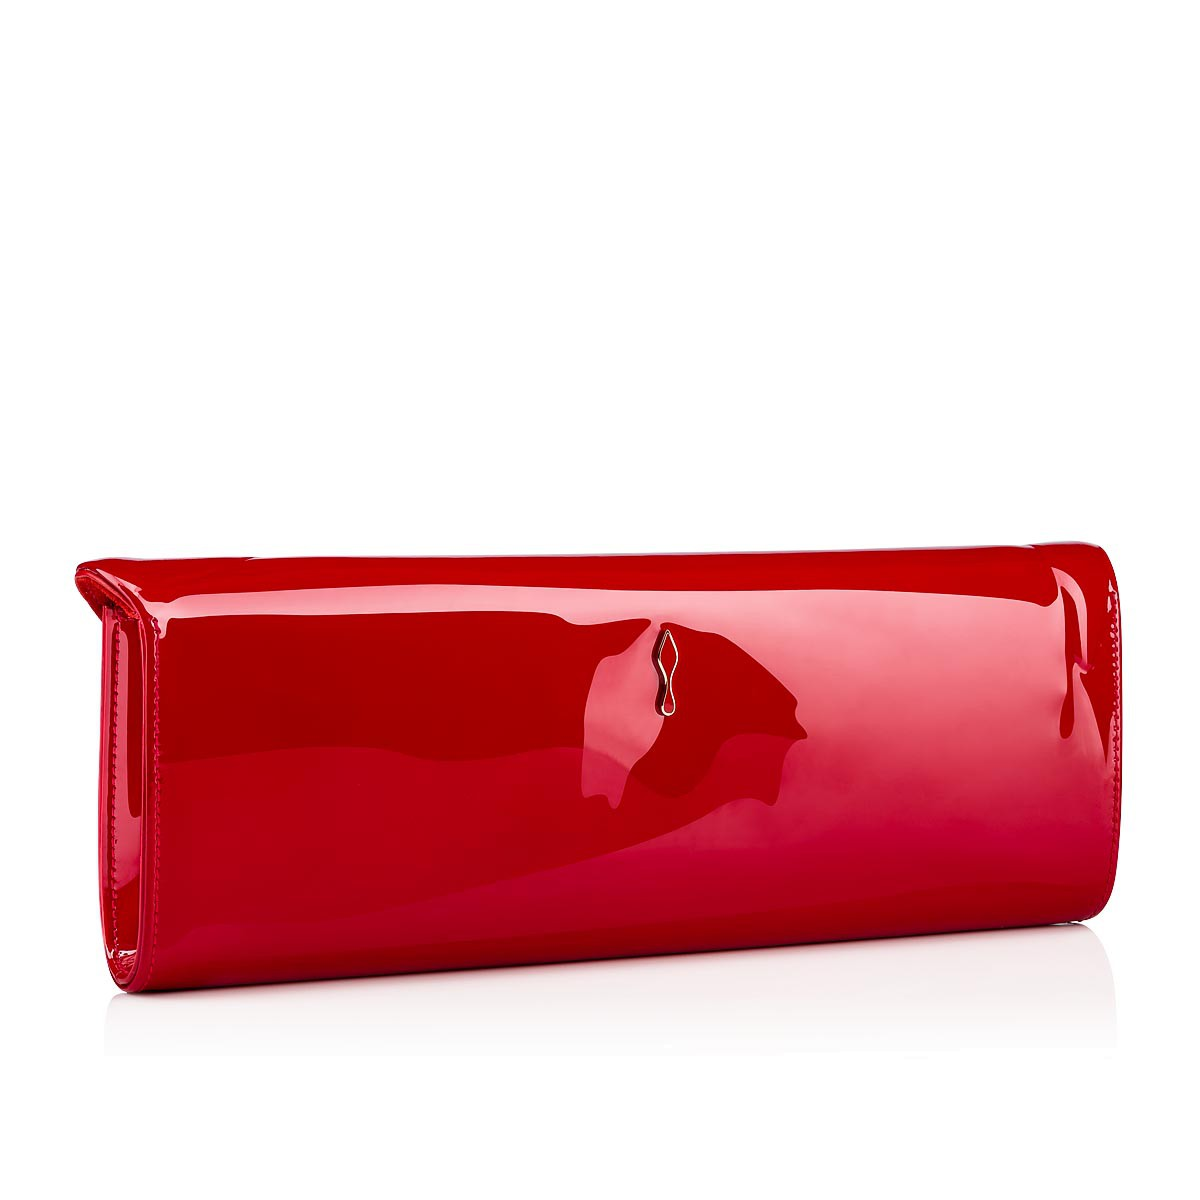 Bags - So Kate Baguette Clutch - Christian Louboutin